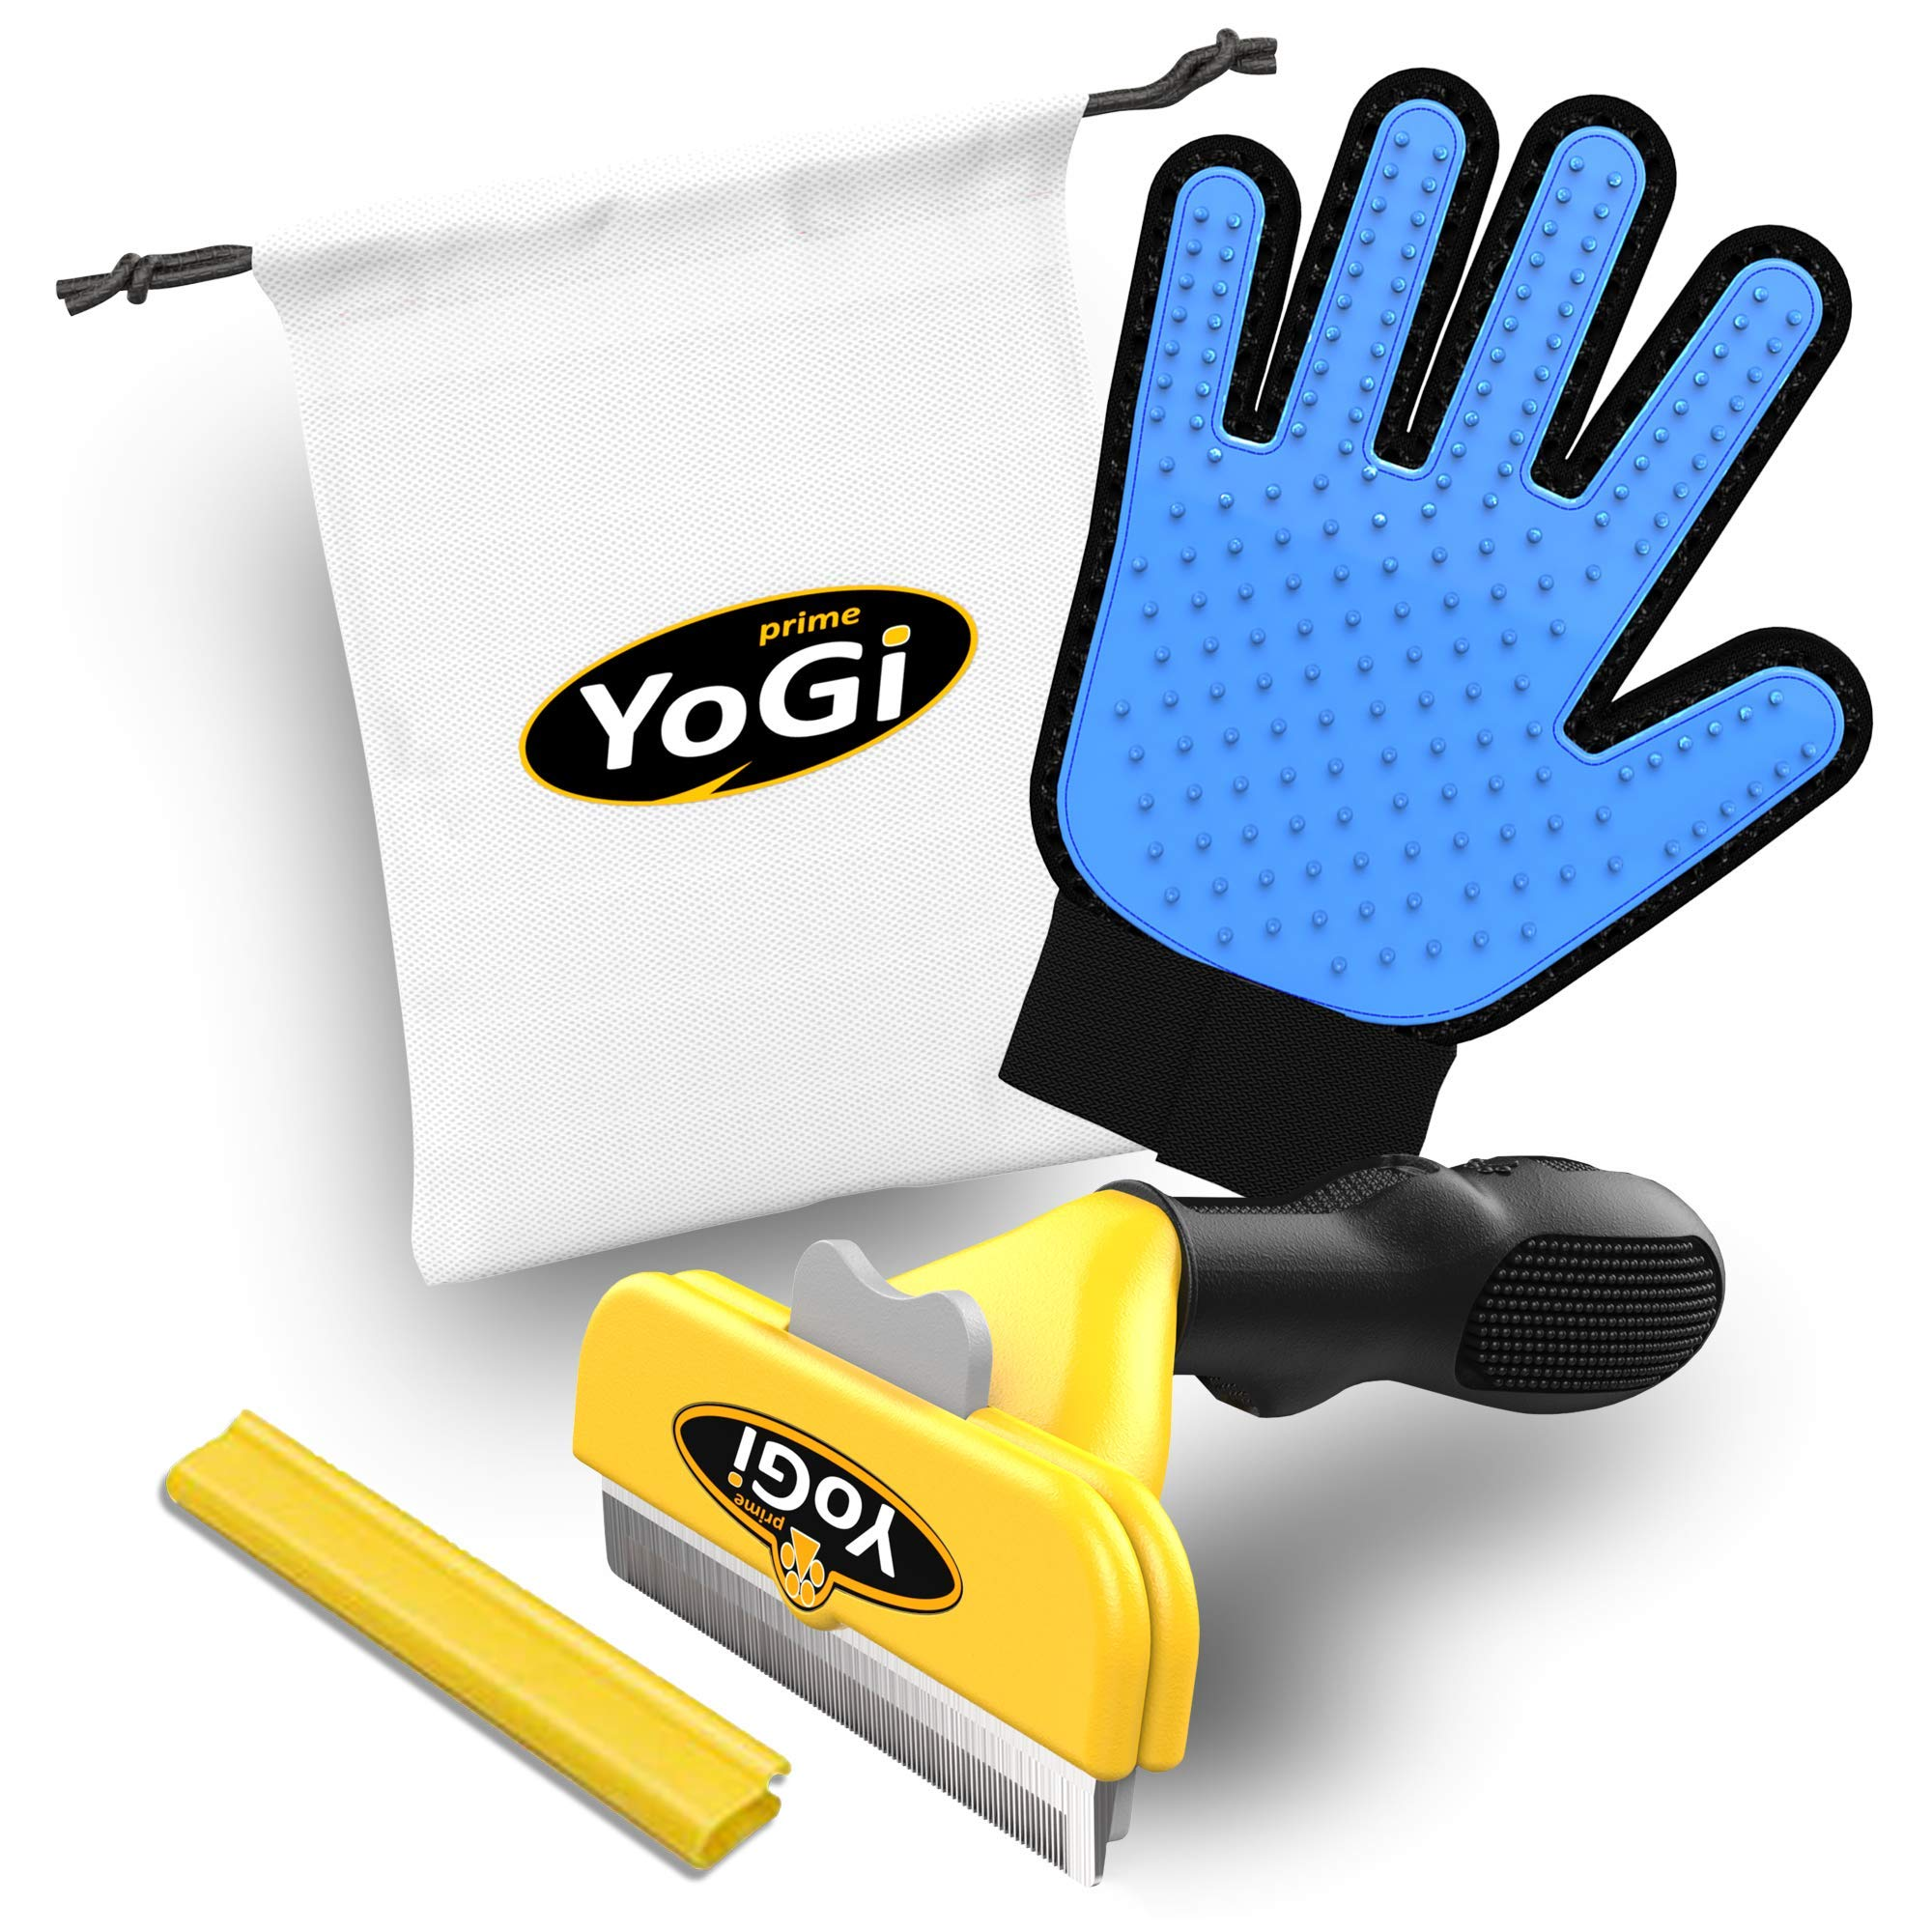 Dog Brush for Shedding and Pet Grooming Glove by YoGi Prime - Pets deShedding tools for dogs and cats, Groom your babys with this fantastic grooming set and they will be happy. Fit to all pet sizes. 4' inch brush. Dogs groomer hair remover kit for long and short hair. No More shedding hair everywhere around the house and car. product image